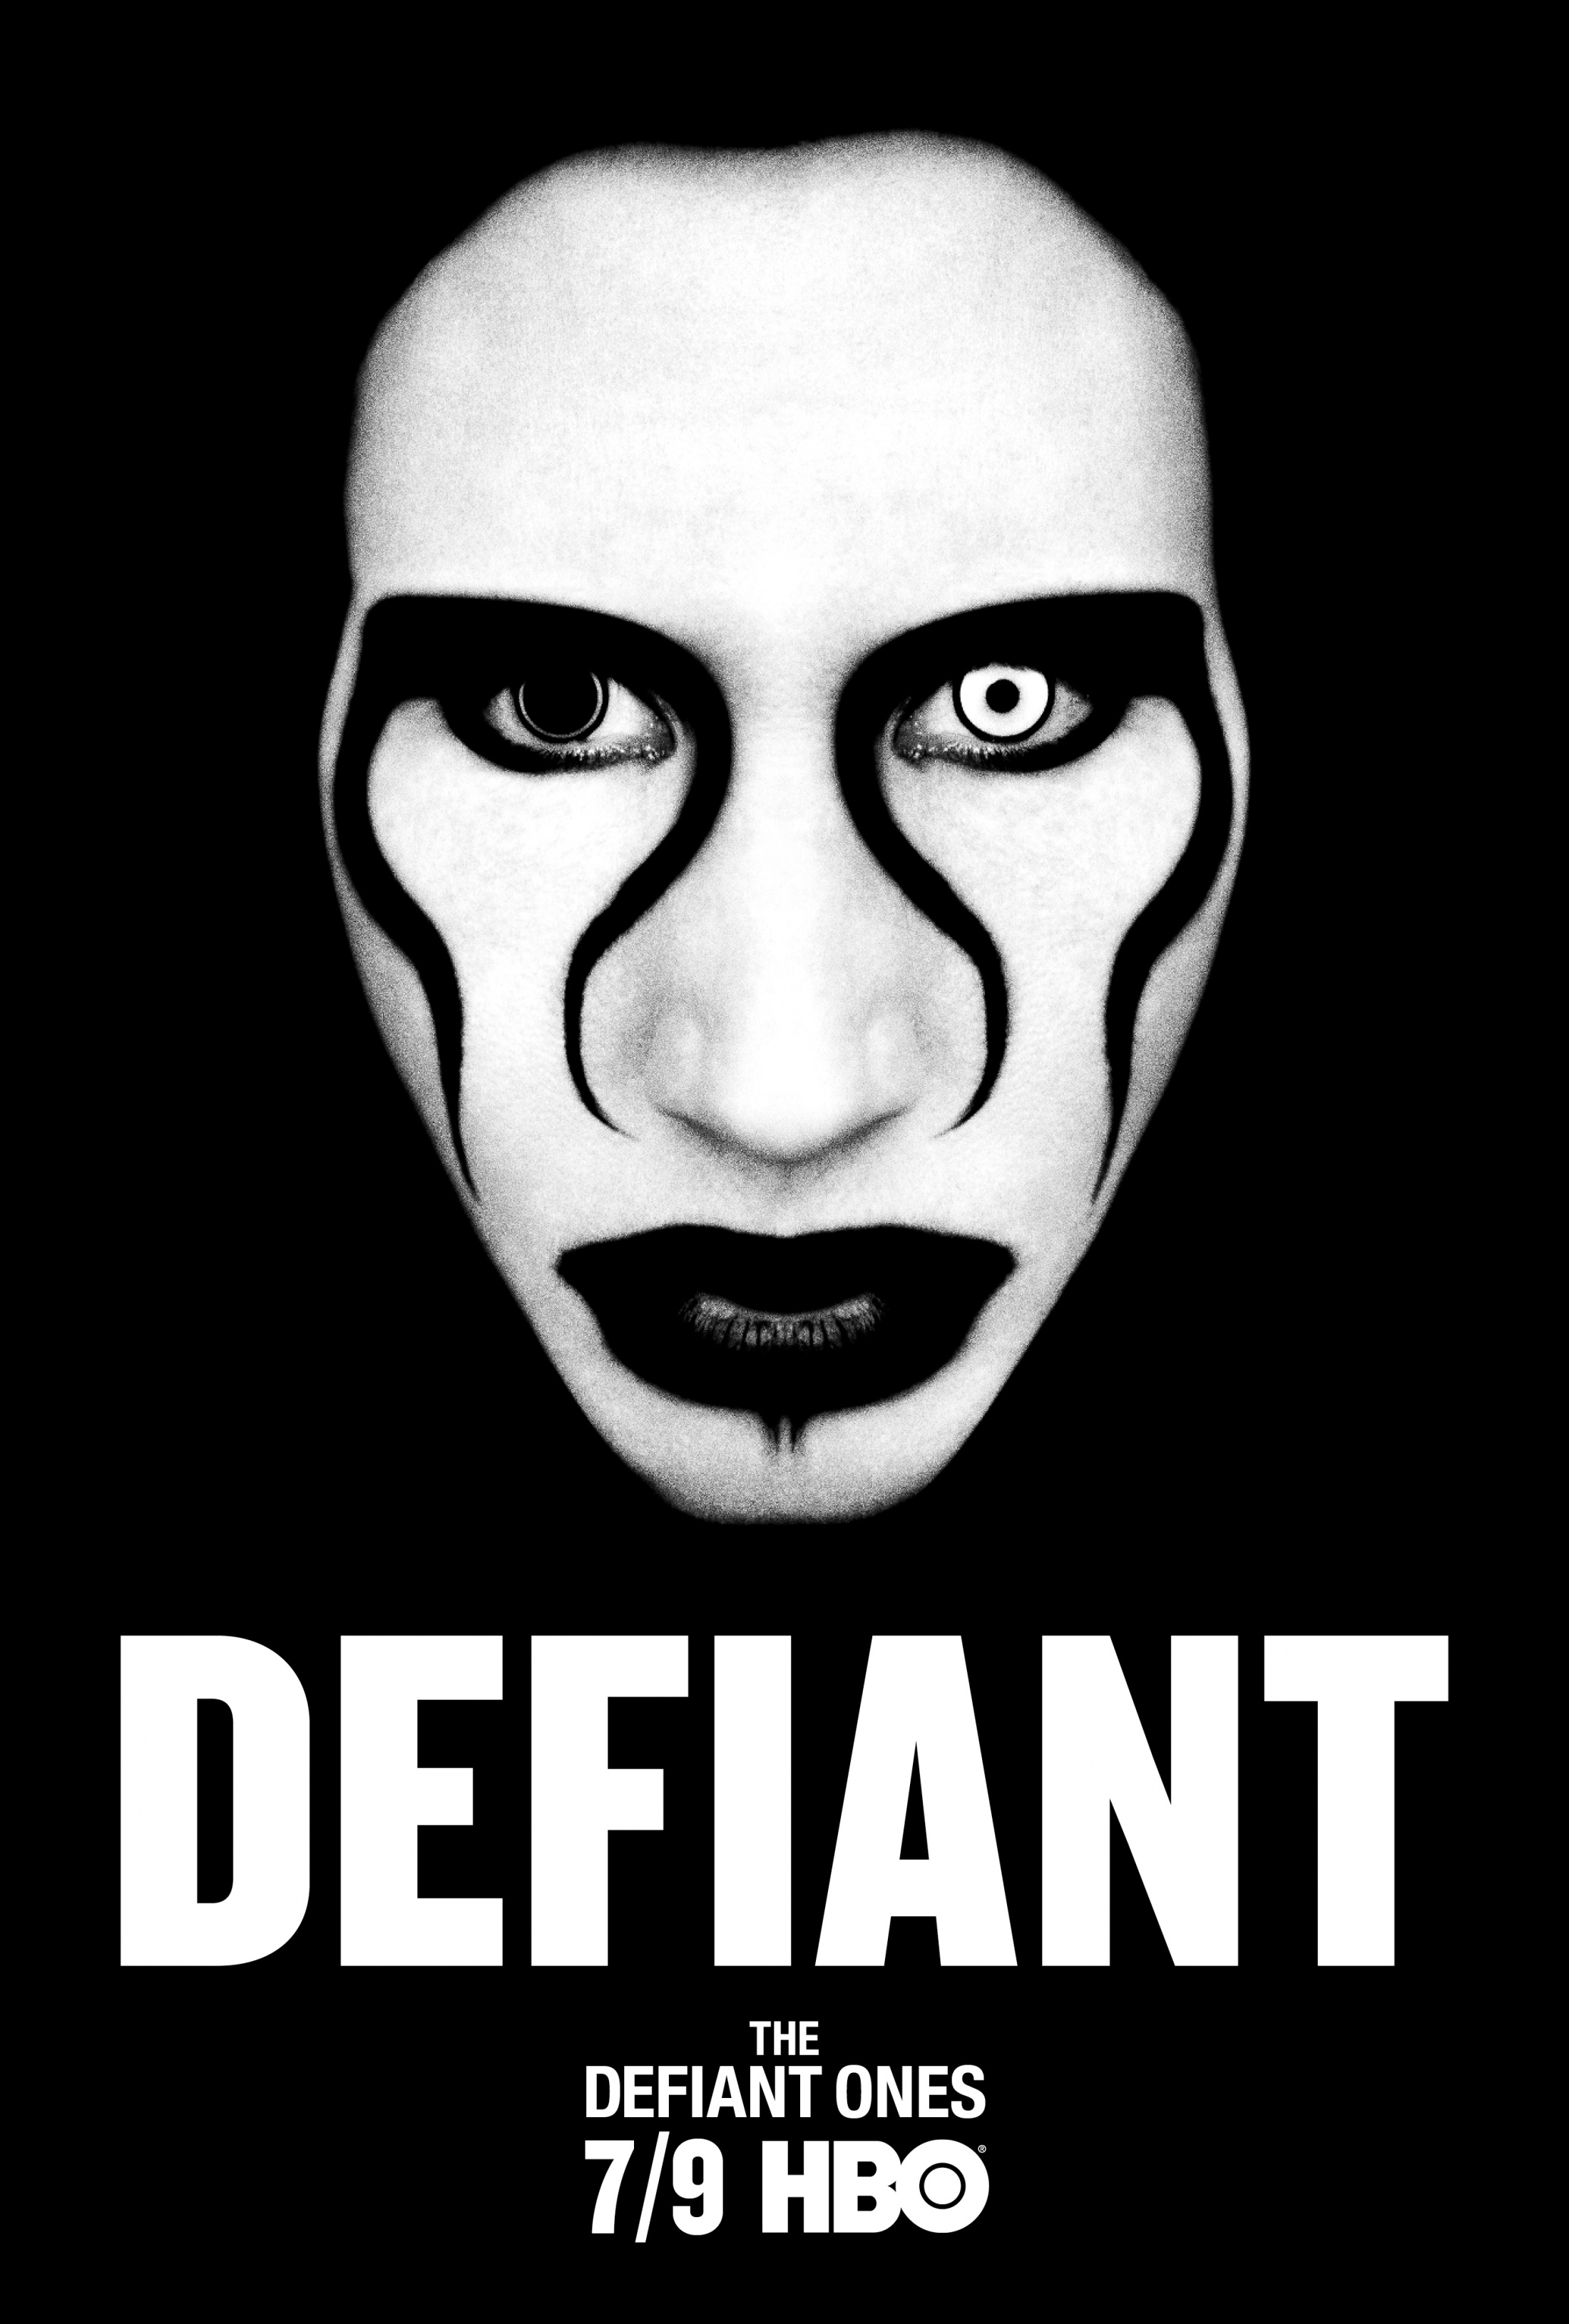 Thumbnail for The Defiant Ones Character Banner: Marilyn Manson